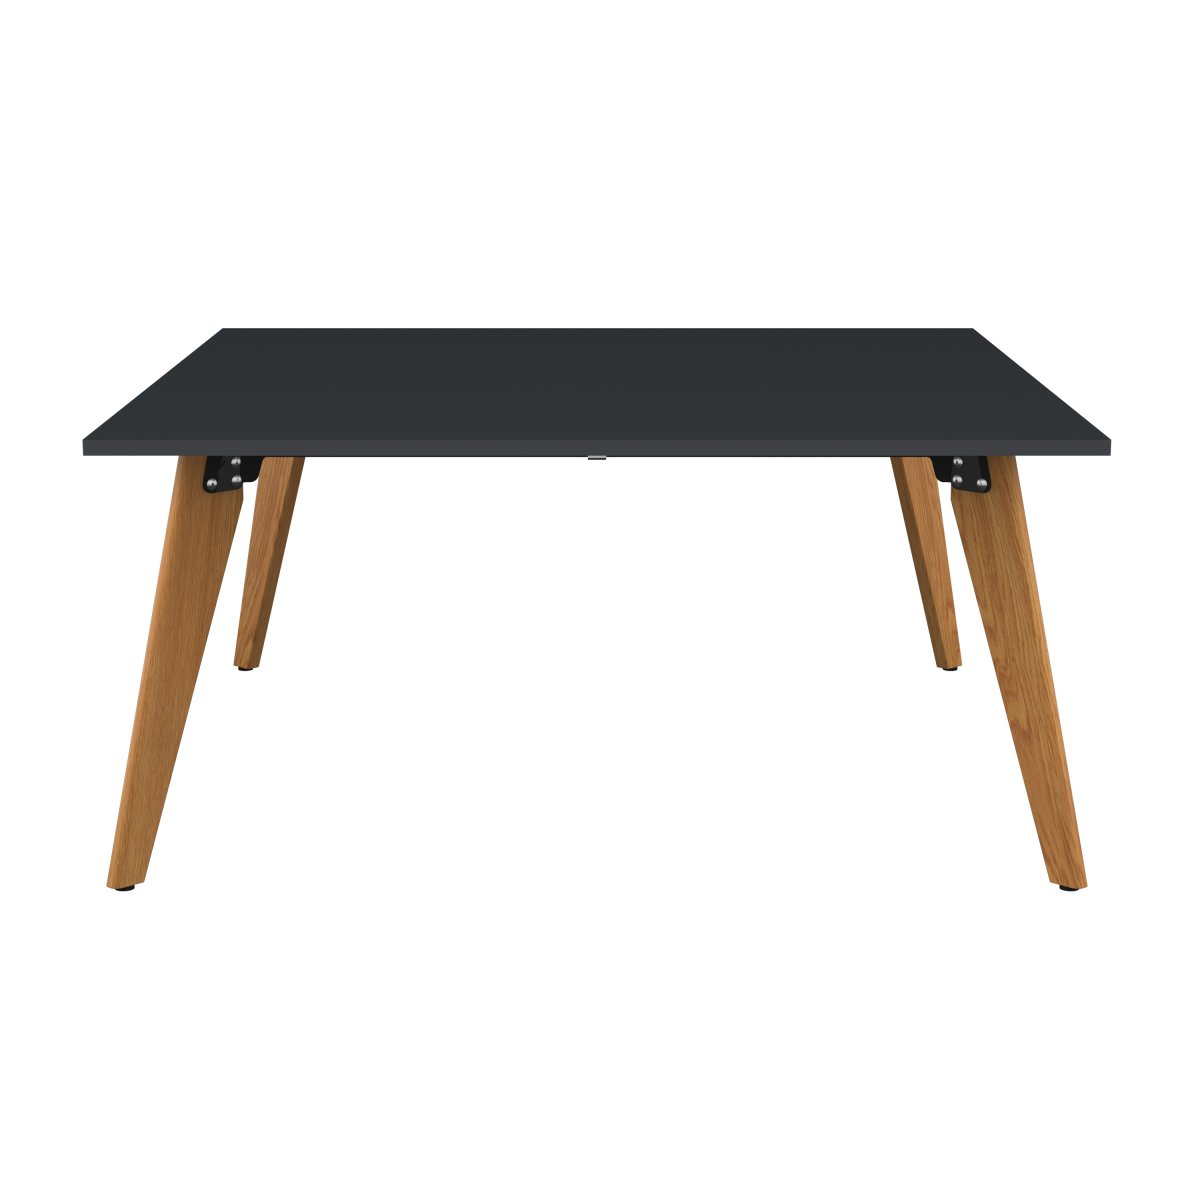 Plateau Square Table Anthracite 1600 X 1600 X 740H